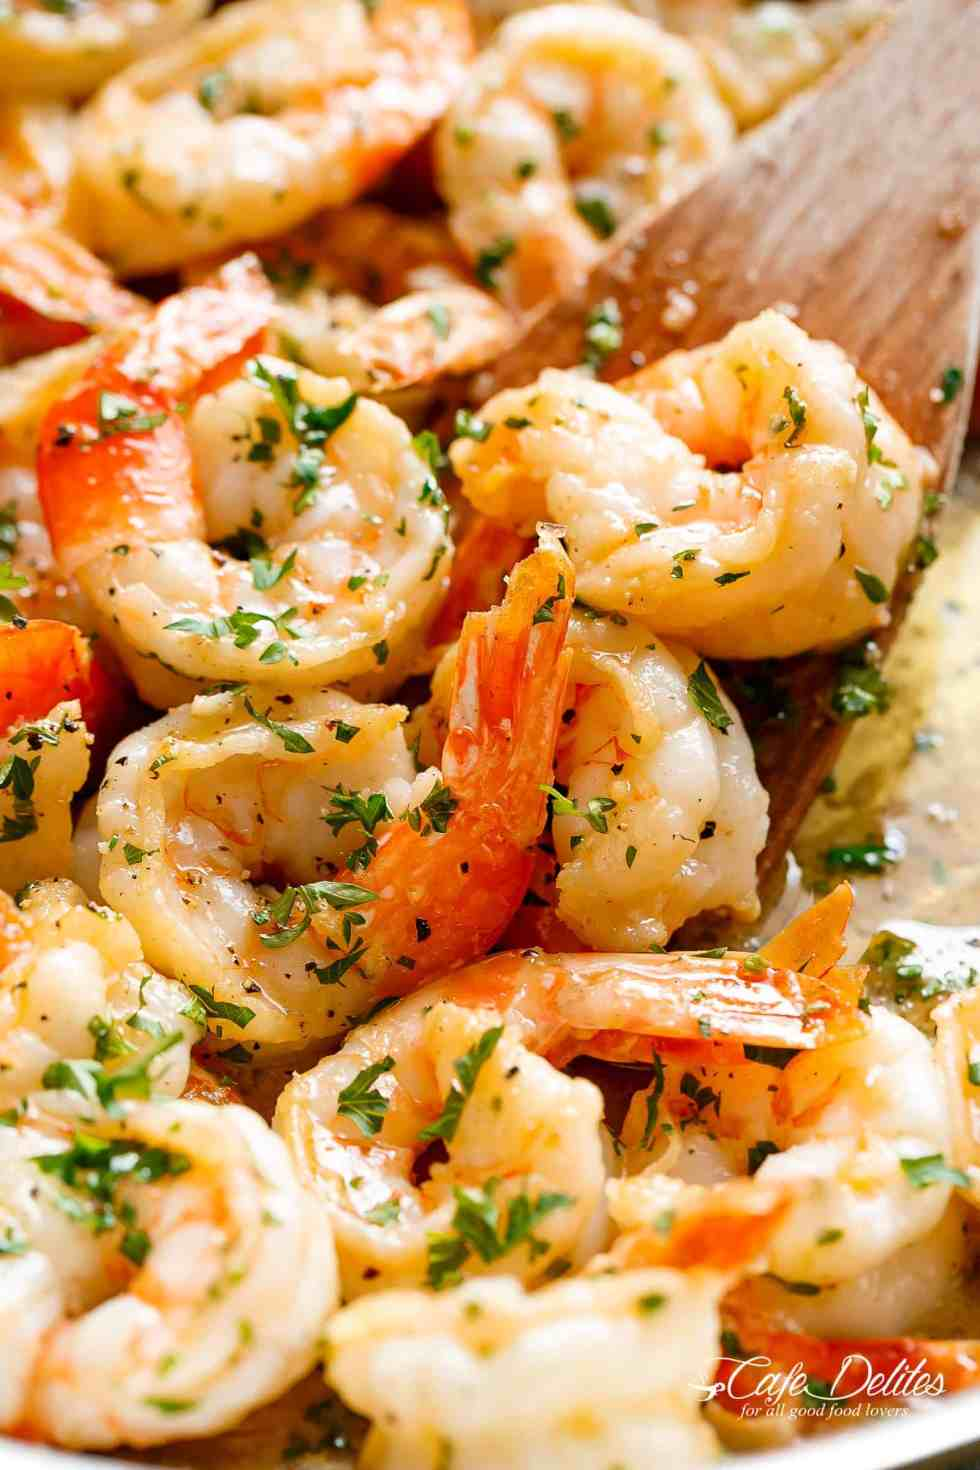 Garlic Butter Shrimp Scampi is so quick and easy withgarlic buttery scampi sauce, a hint of white wine & lemon! Ready in less than 10 minutes! | cafedelites.com